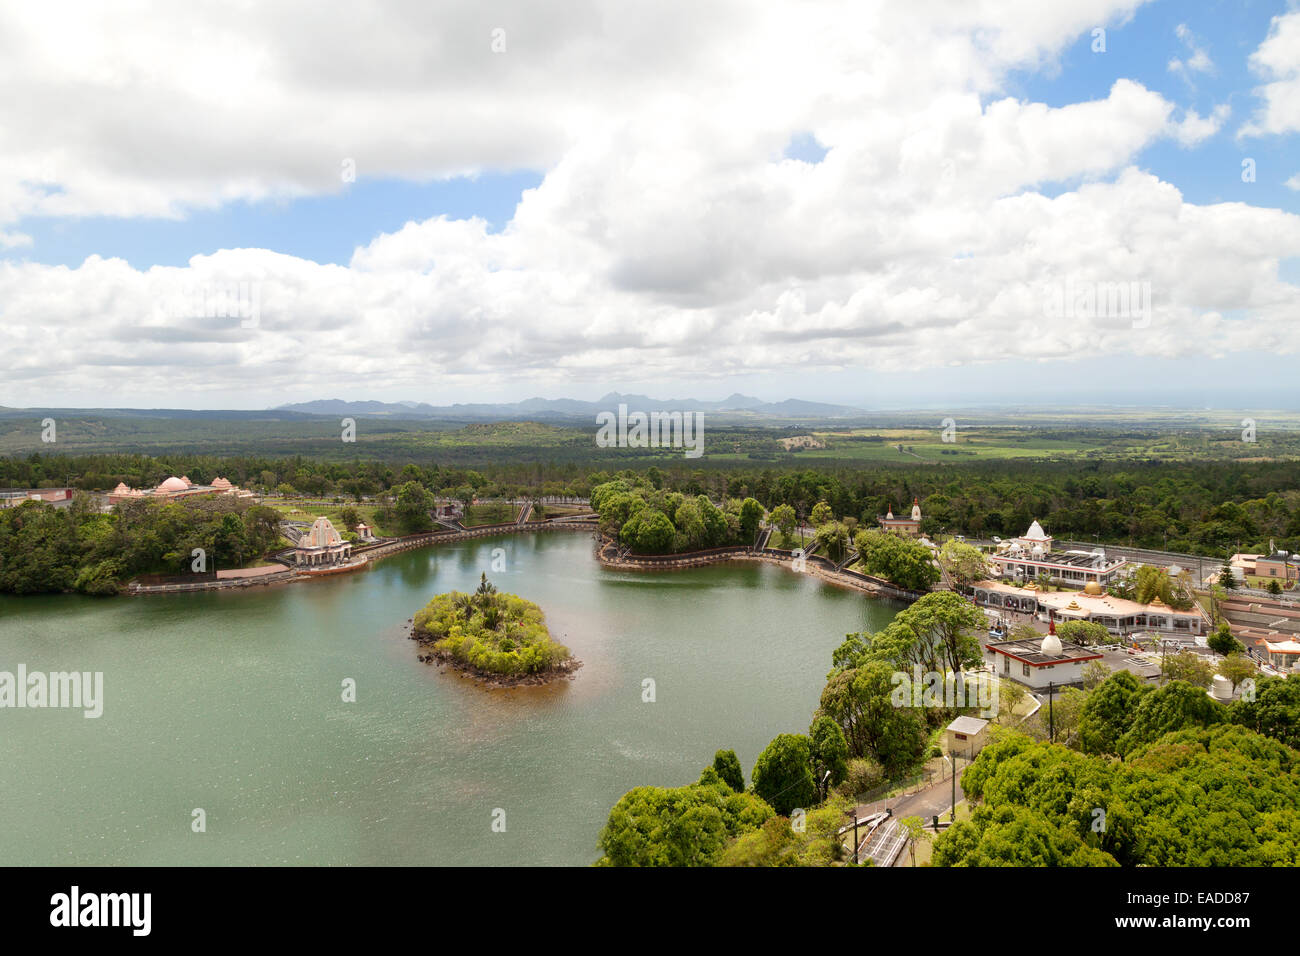 The Hindu Temple complex at Grand Bassin  ( also known as Ganga Taleo or Ganges Lake ), Mauritius - Stock Image